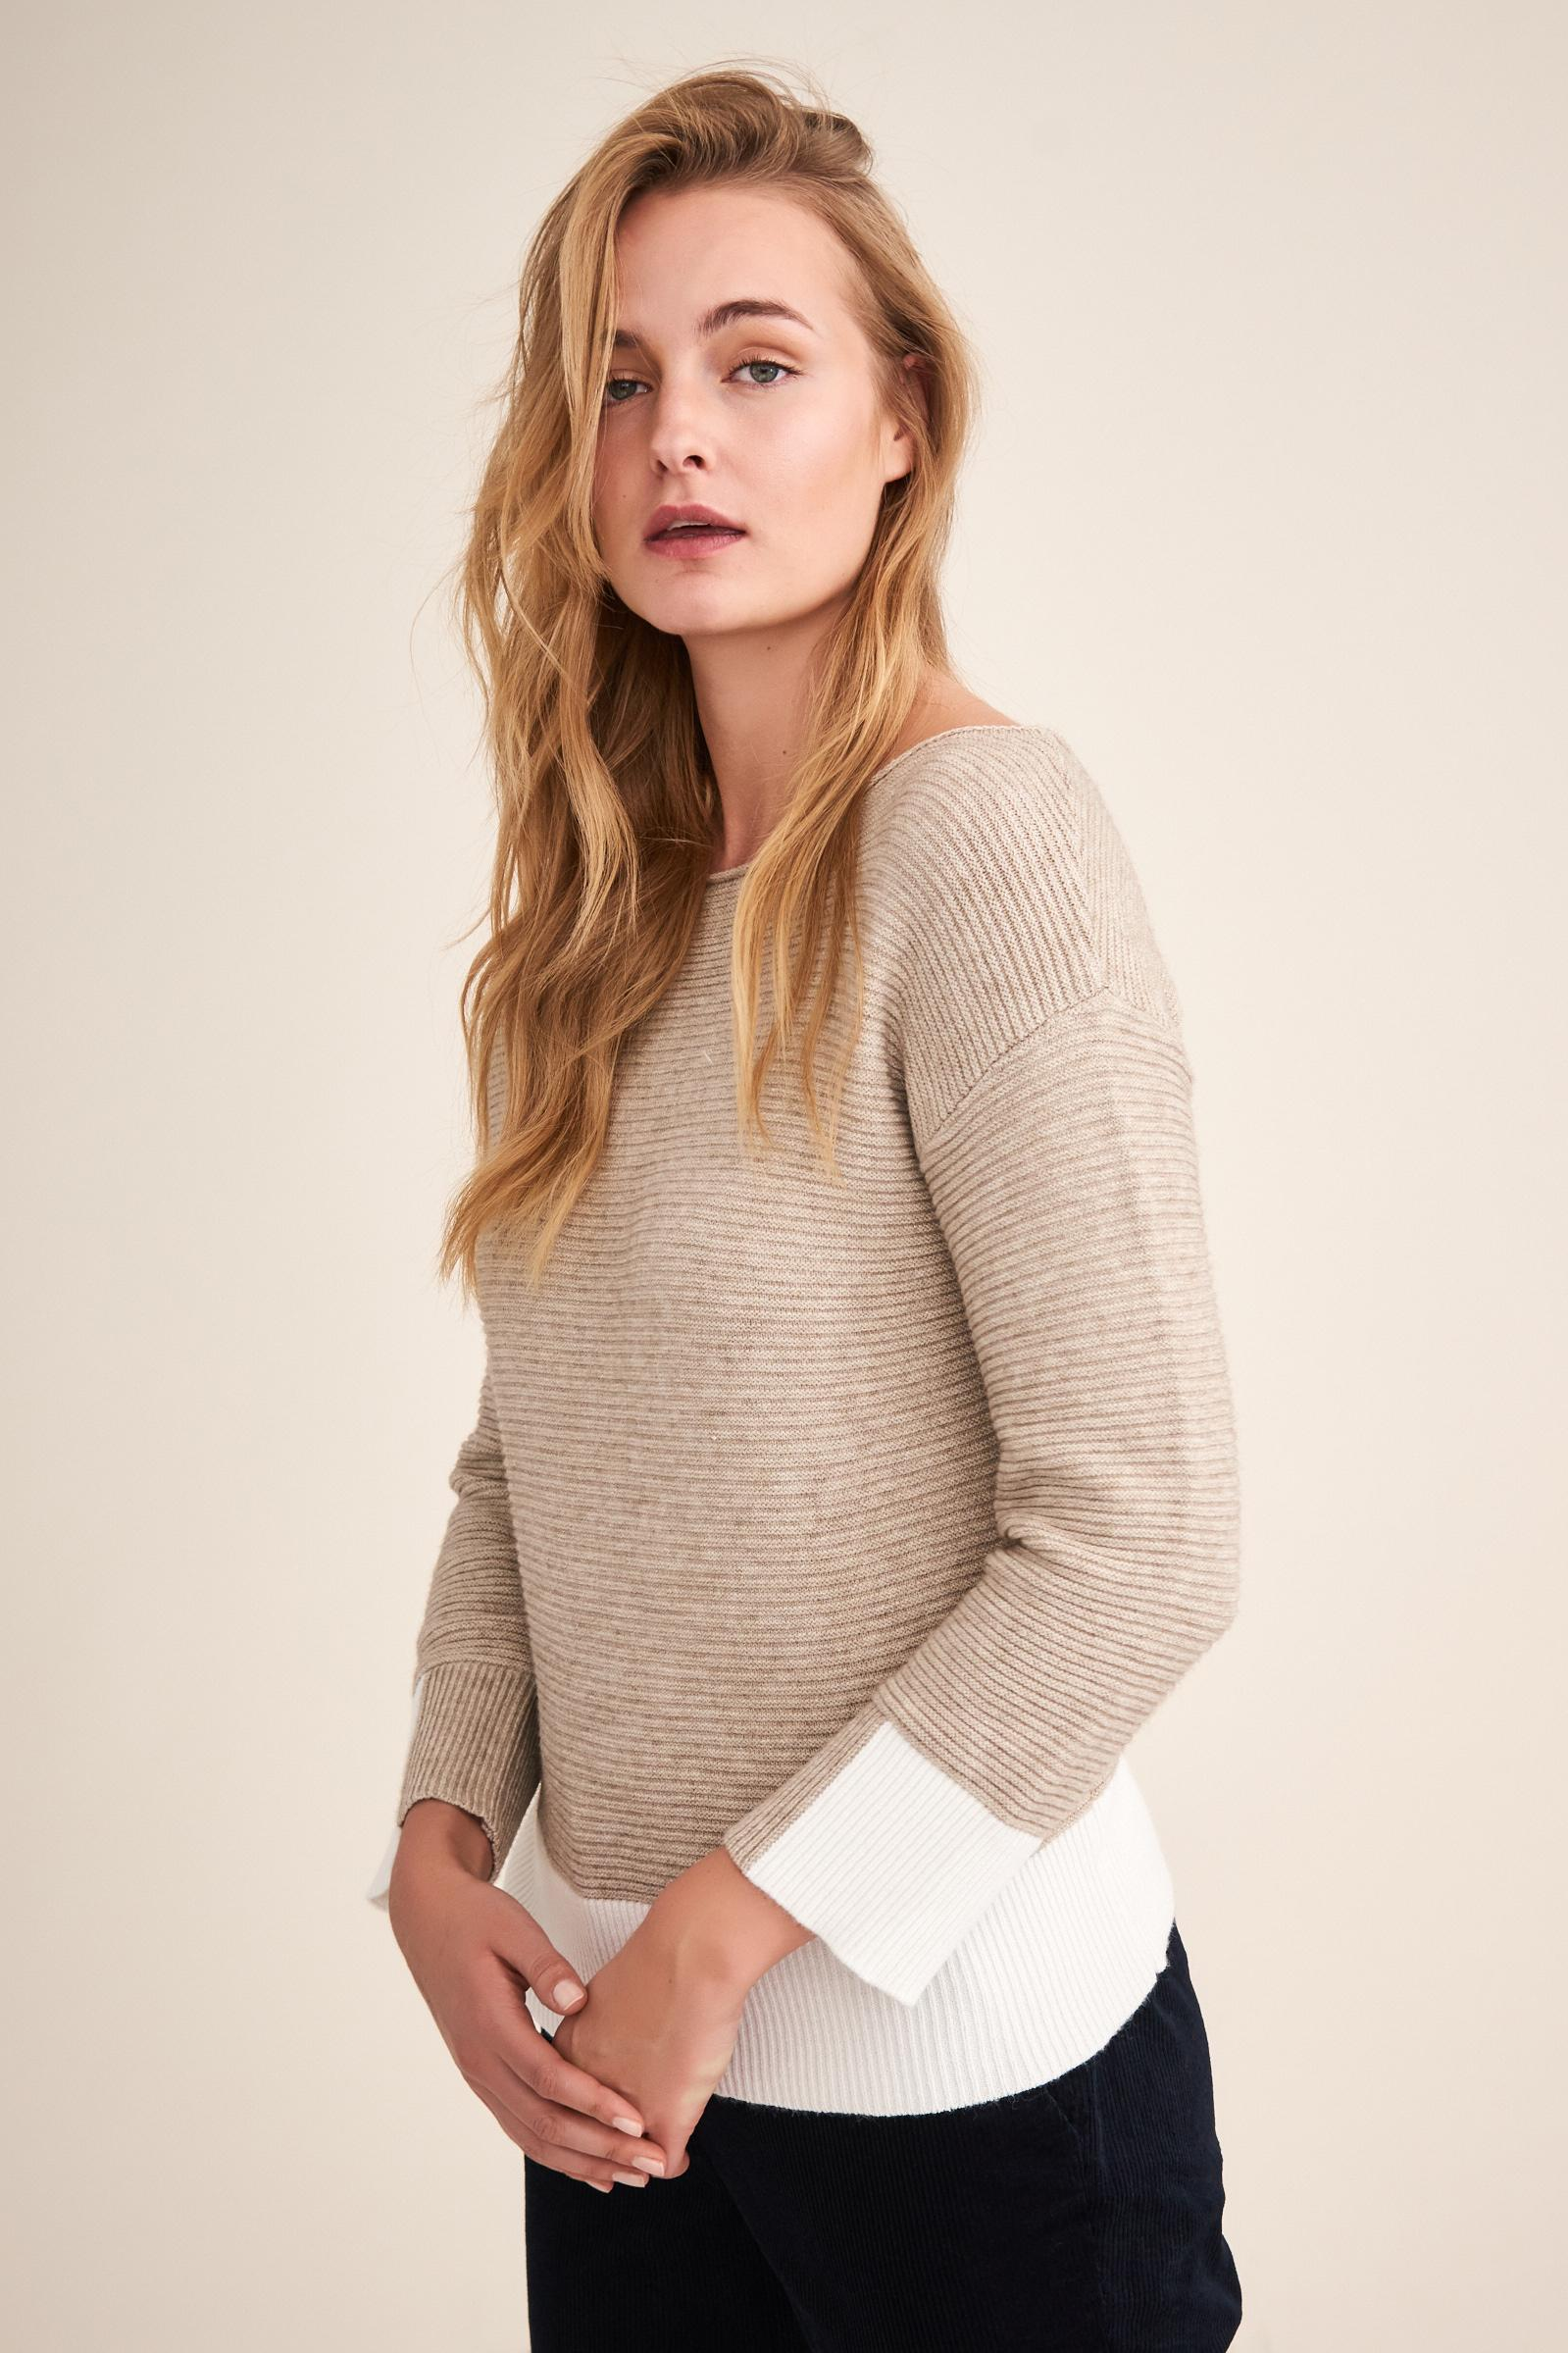 LADIES' SWEATER WITH A CONTRAST BOTTOM ROLI